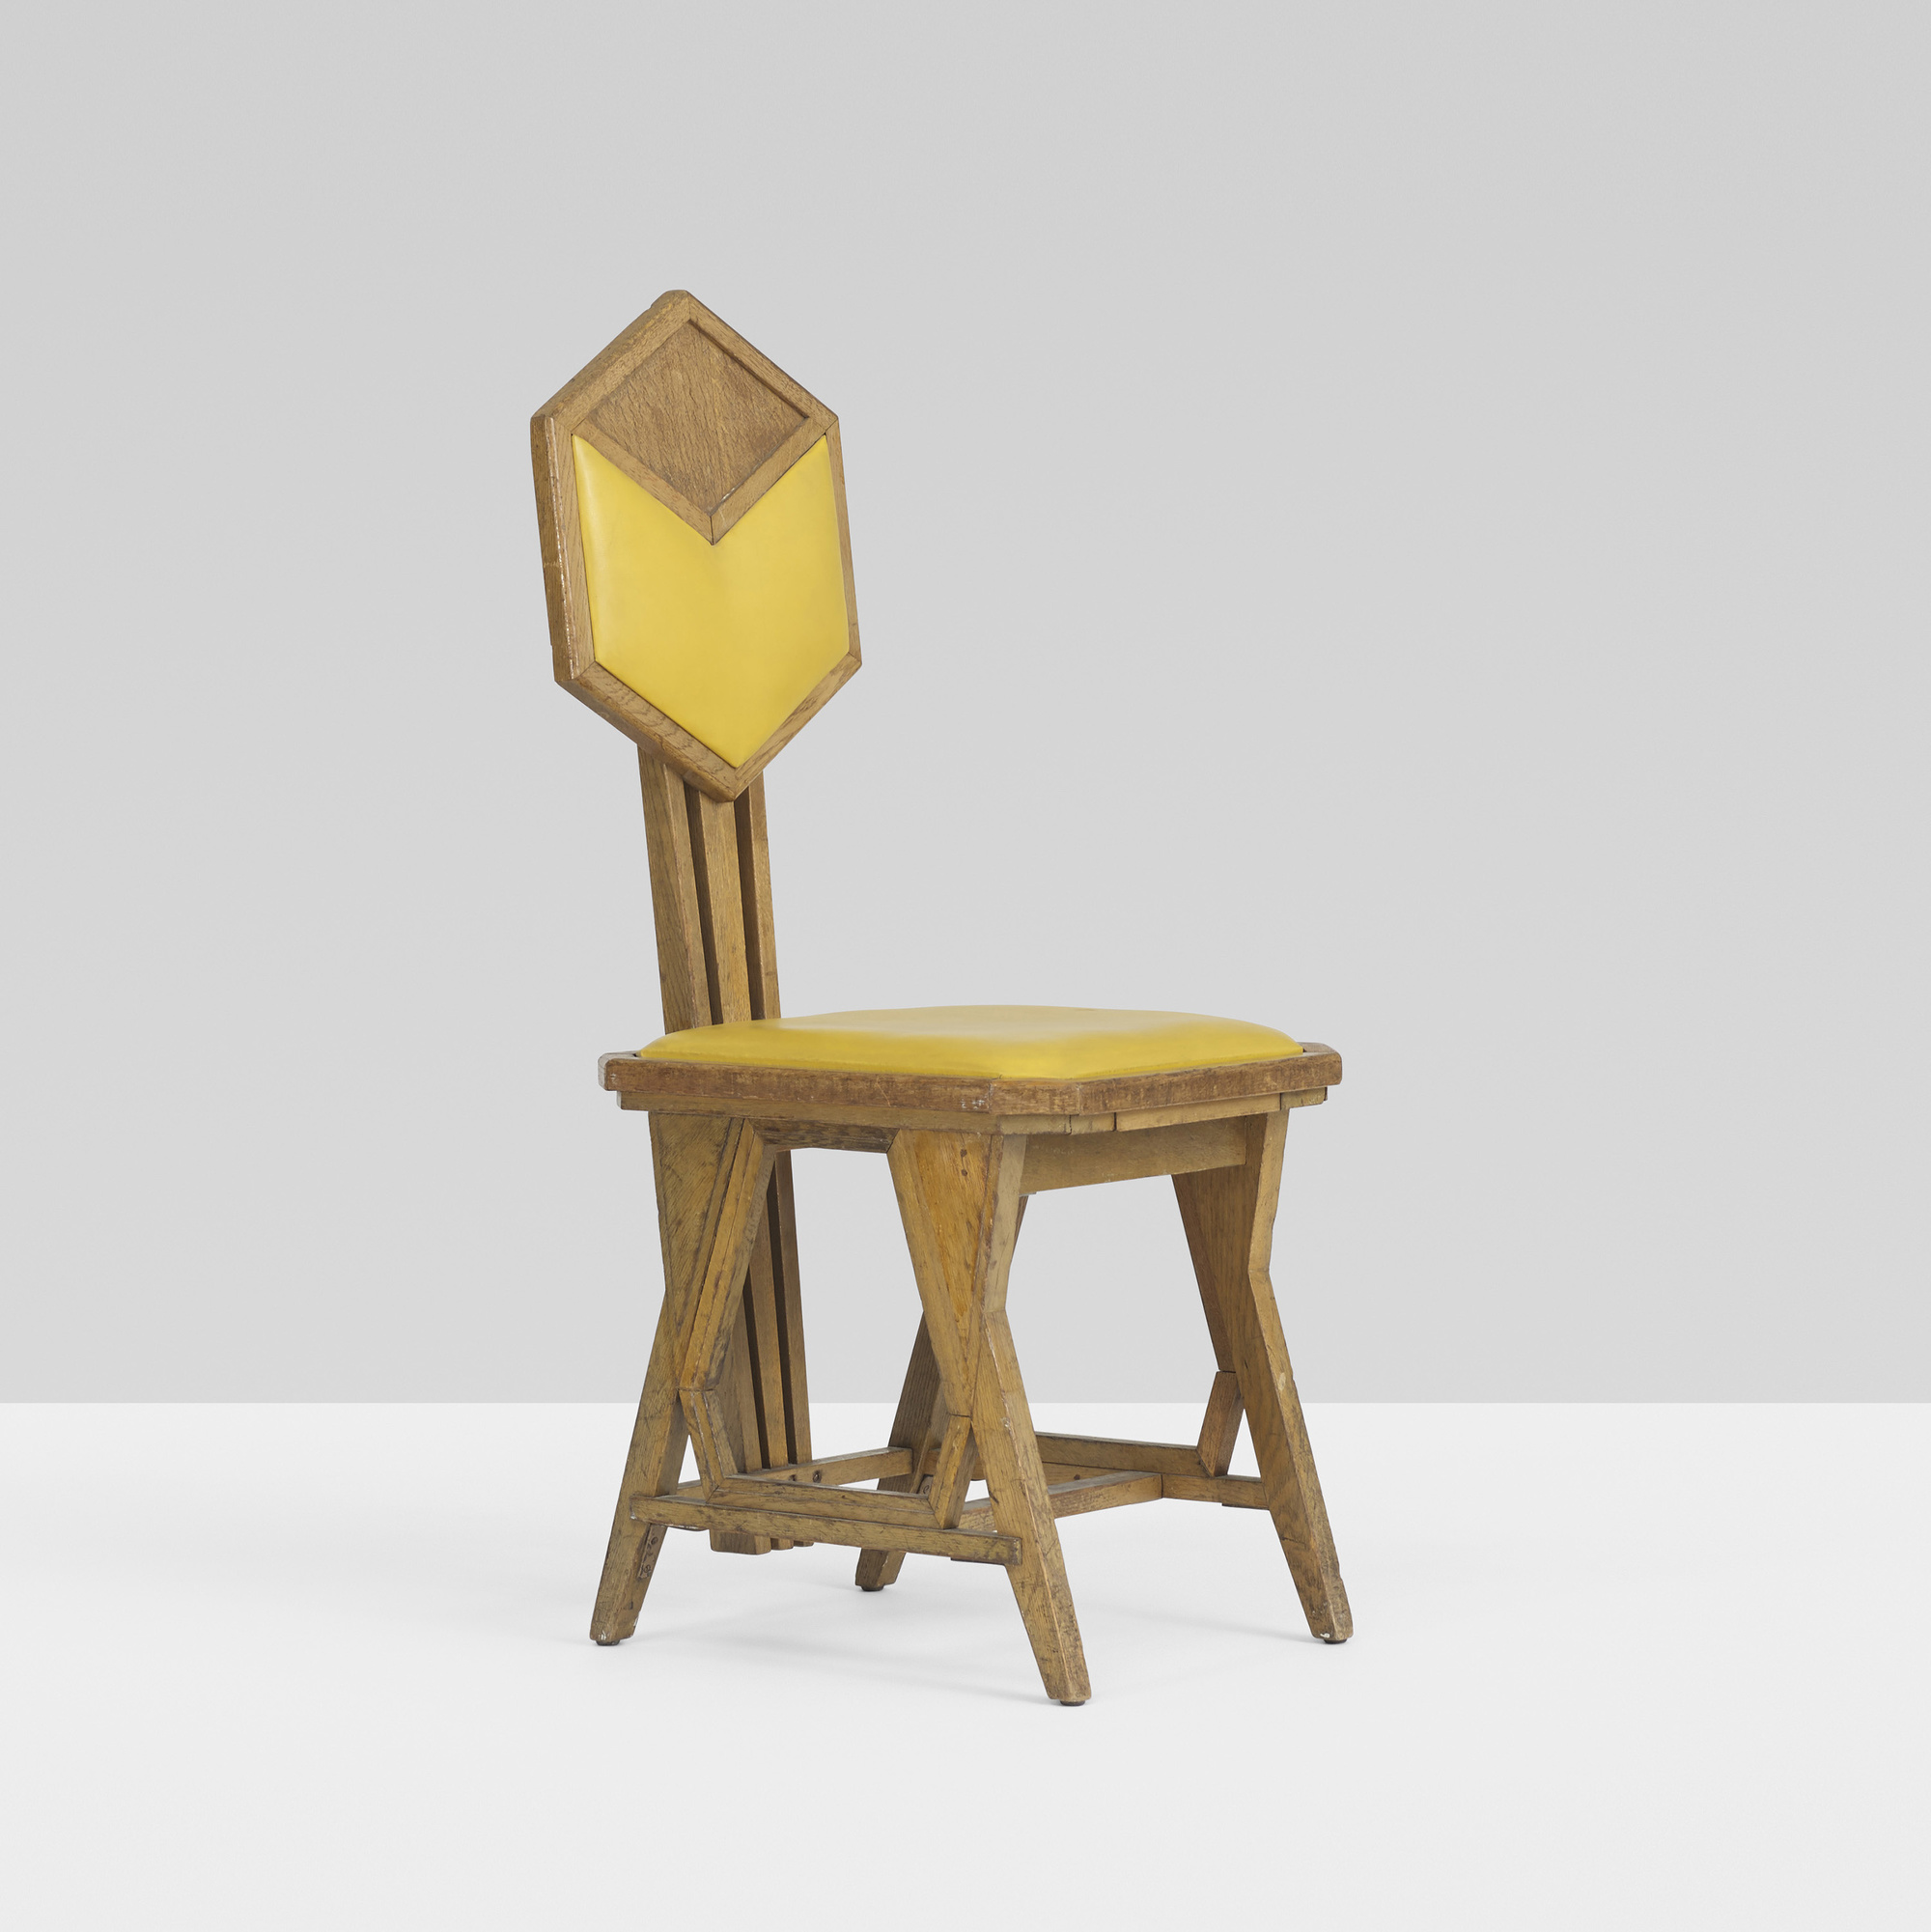 156: FRANK LLOYD WRIGHT, chair from the Imperial Hotel, Tokyo